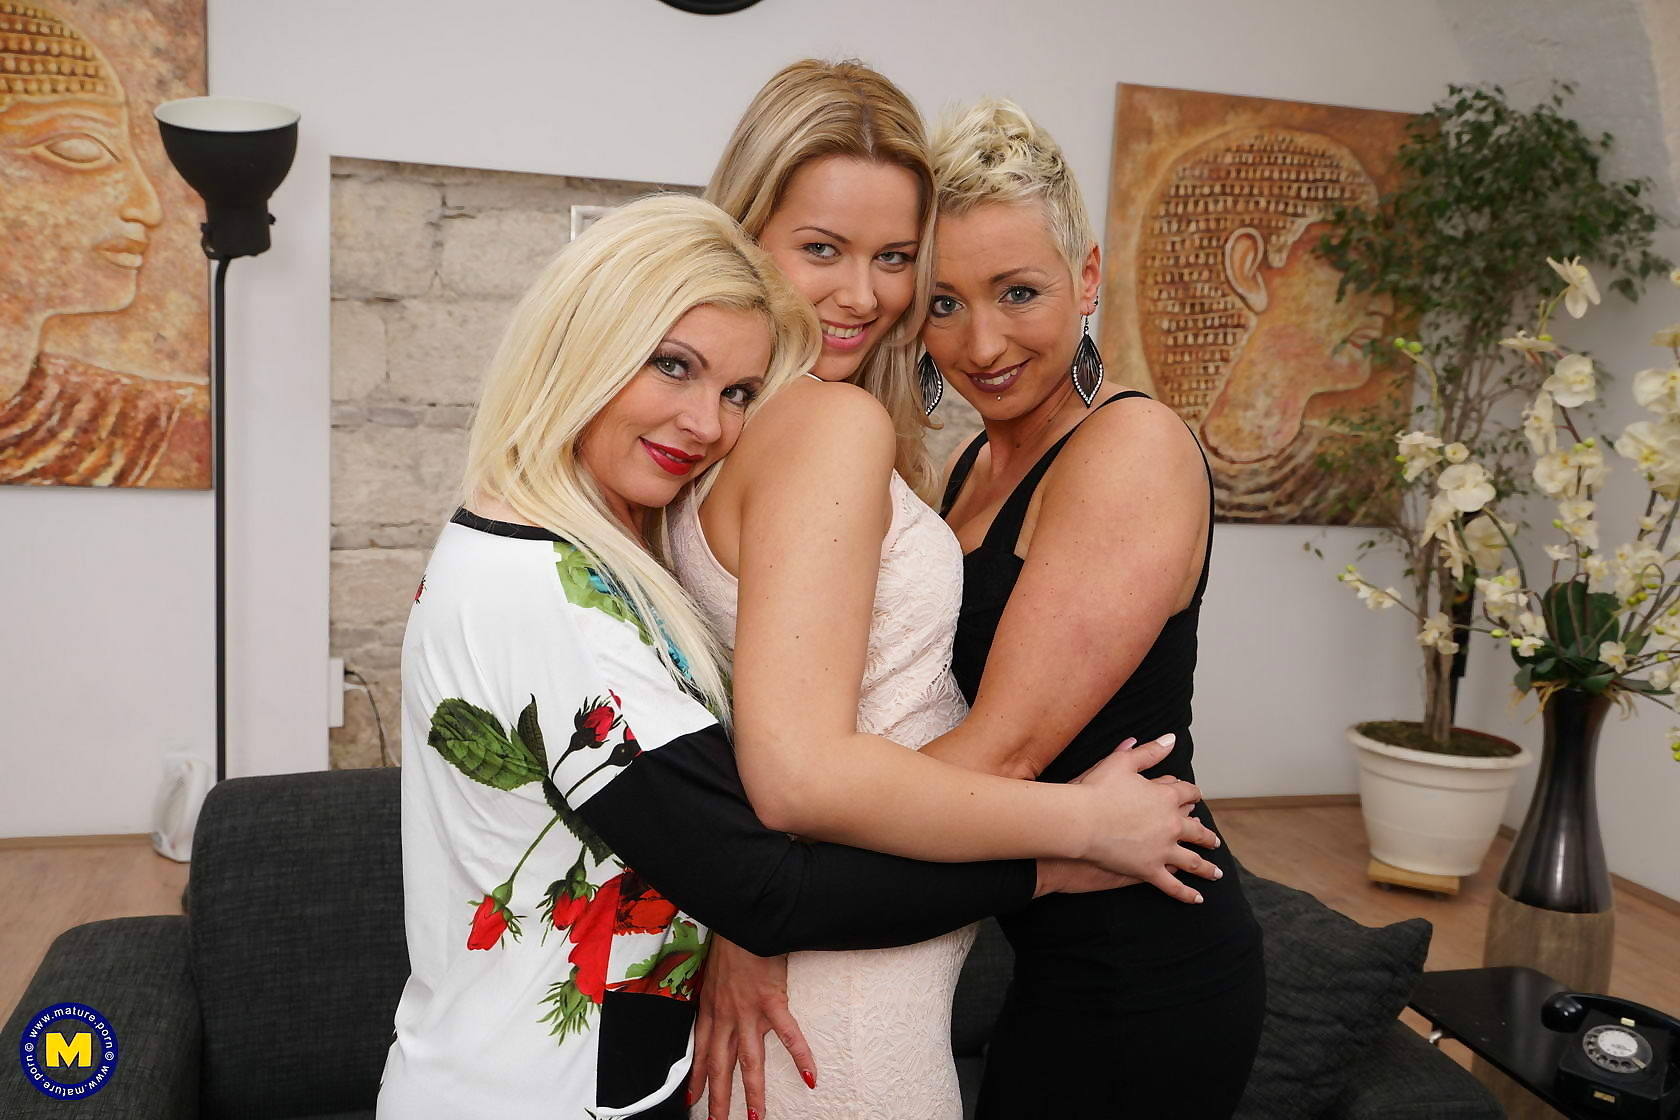 Three old and young lesbians have fun on the couch - part 1635